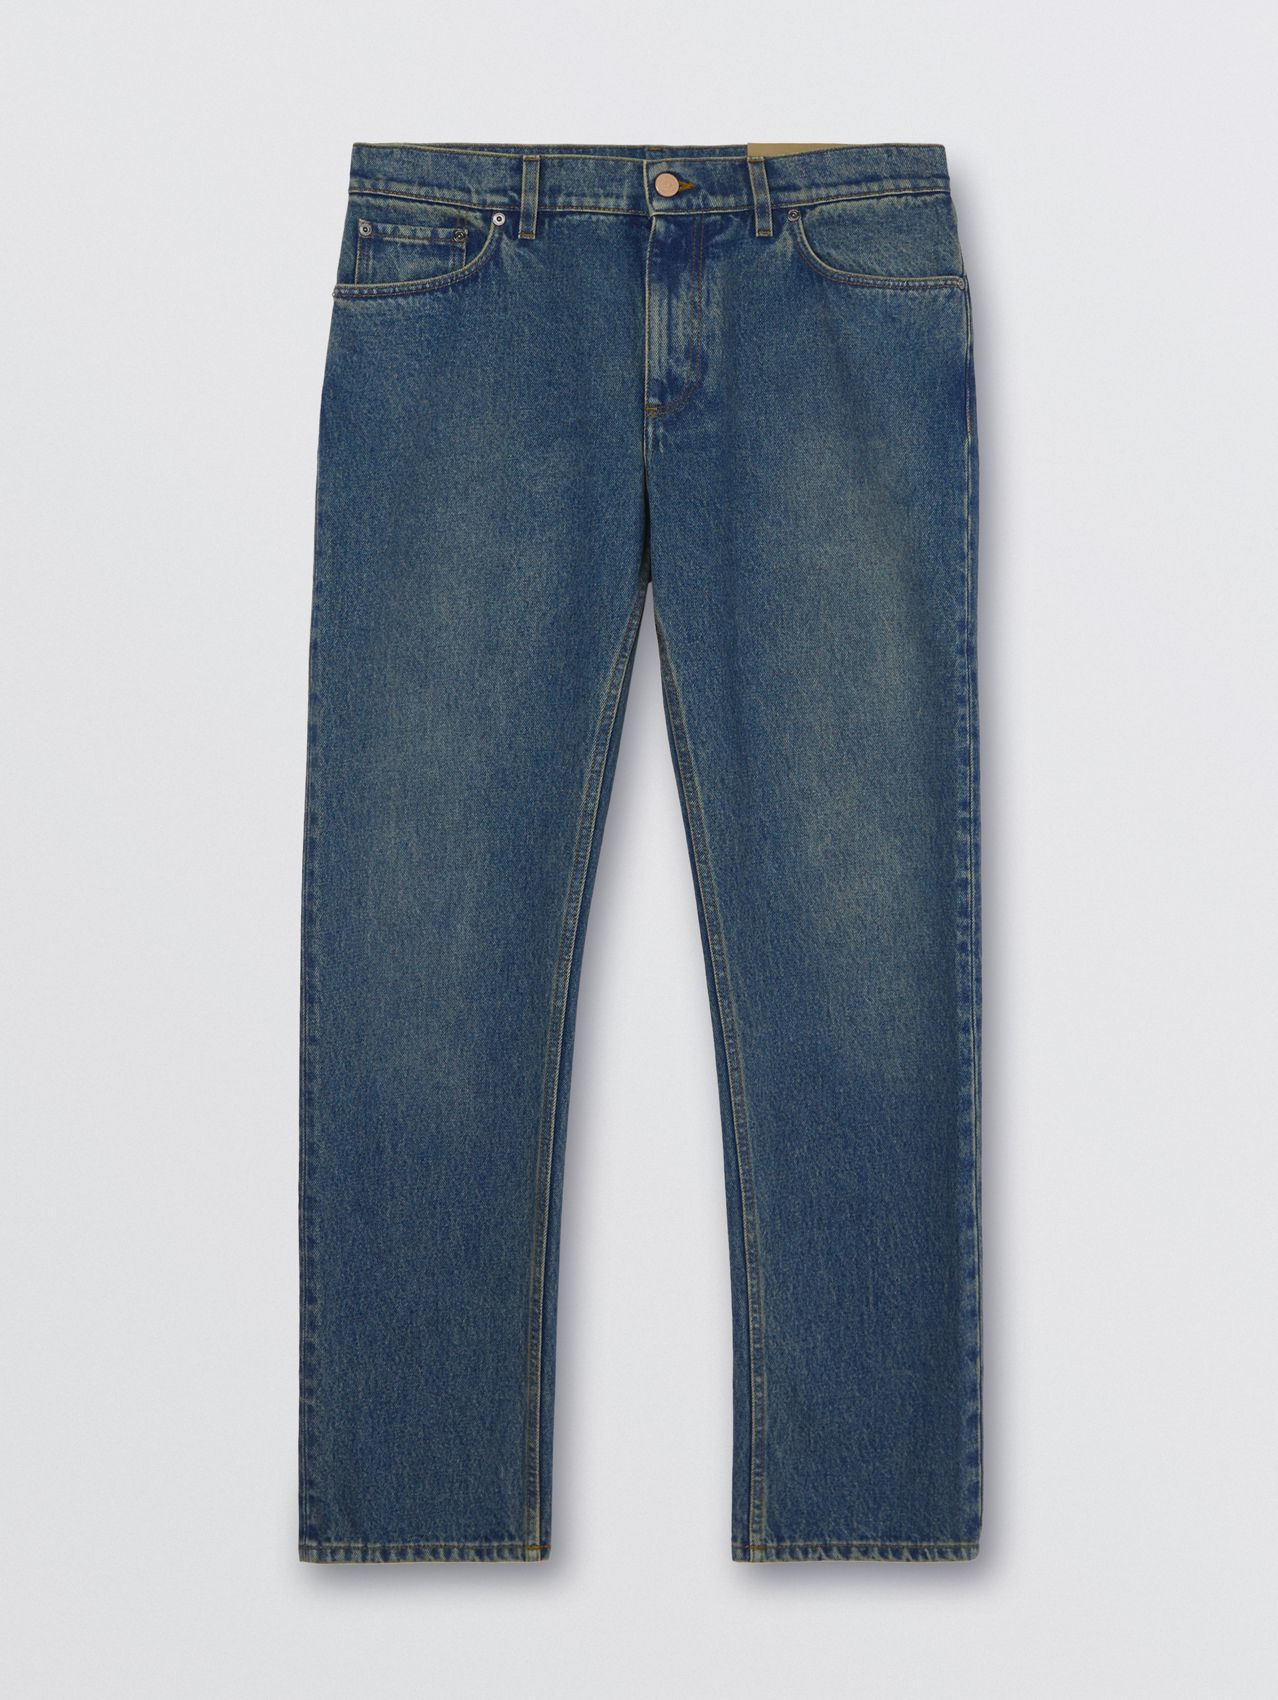 Straight Fit Washed Jeans in Indigo